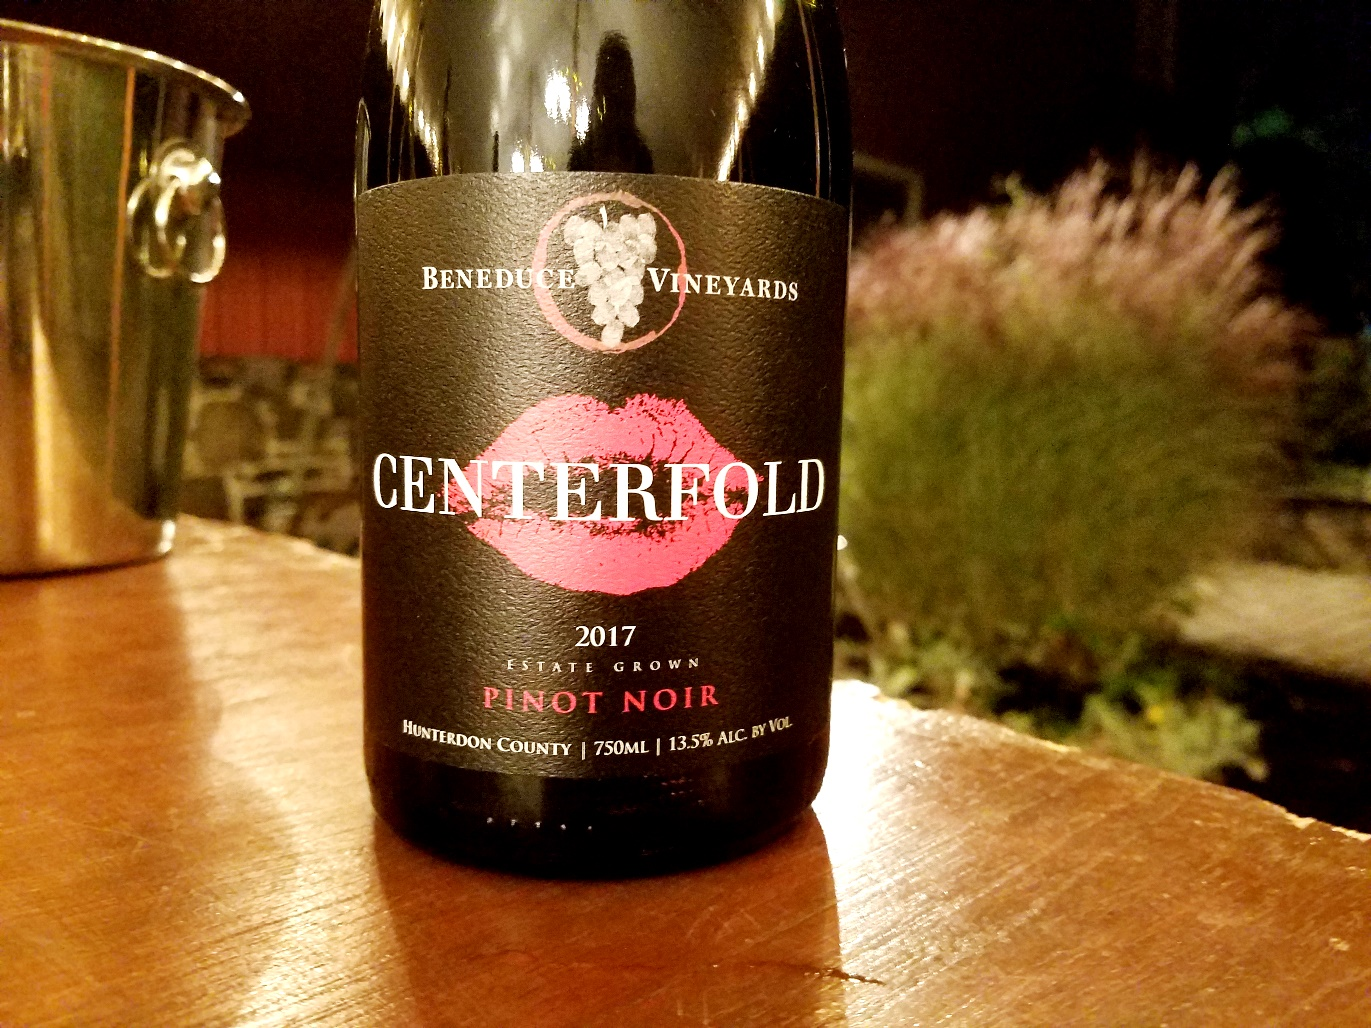 Beneduce Vineyards, Centerfold Pinot Noir 2017, New Jersey, Wine Casual